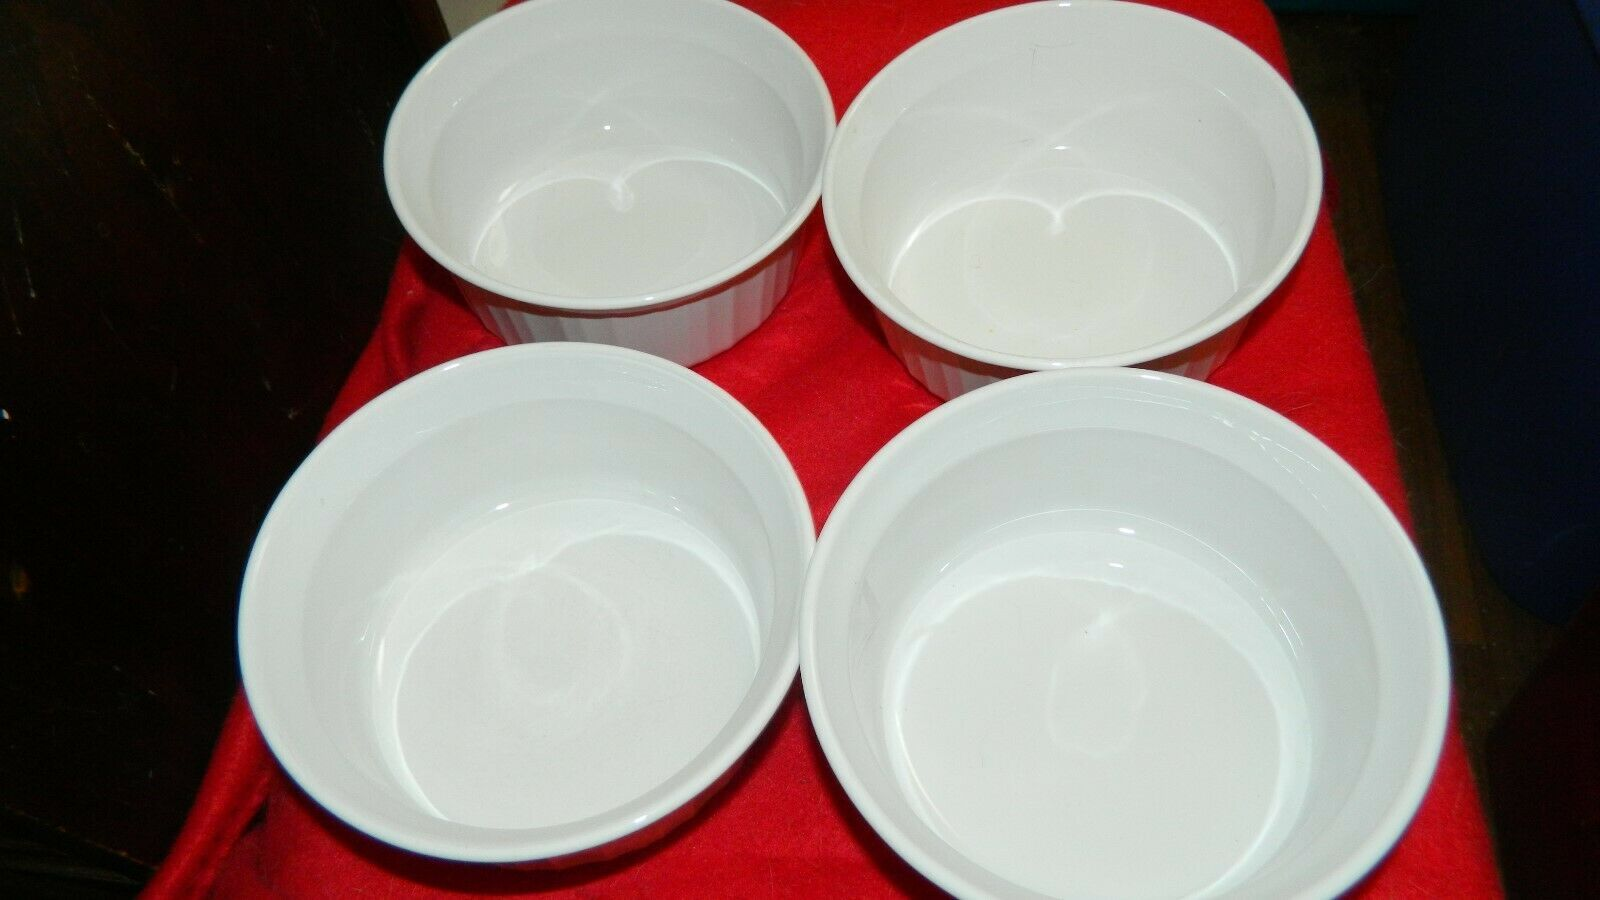 Primary image for CORNING WARE F-16-B ROUND 16 OUNCE CASSEROLE DISH LOT OF 2  FREE USA SHIPPING